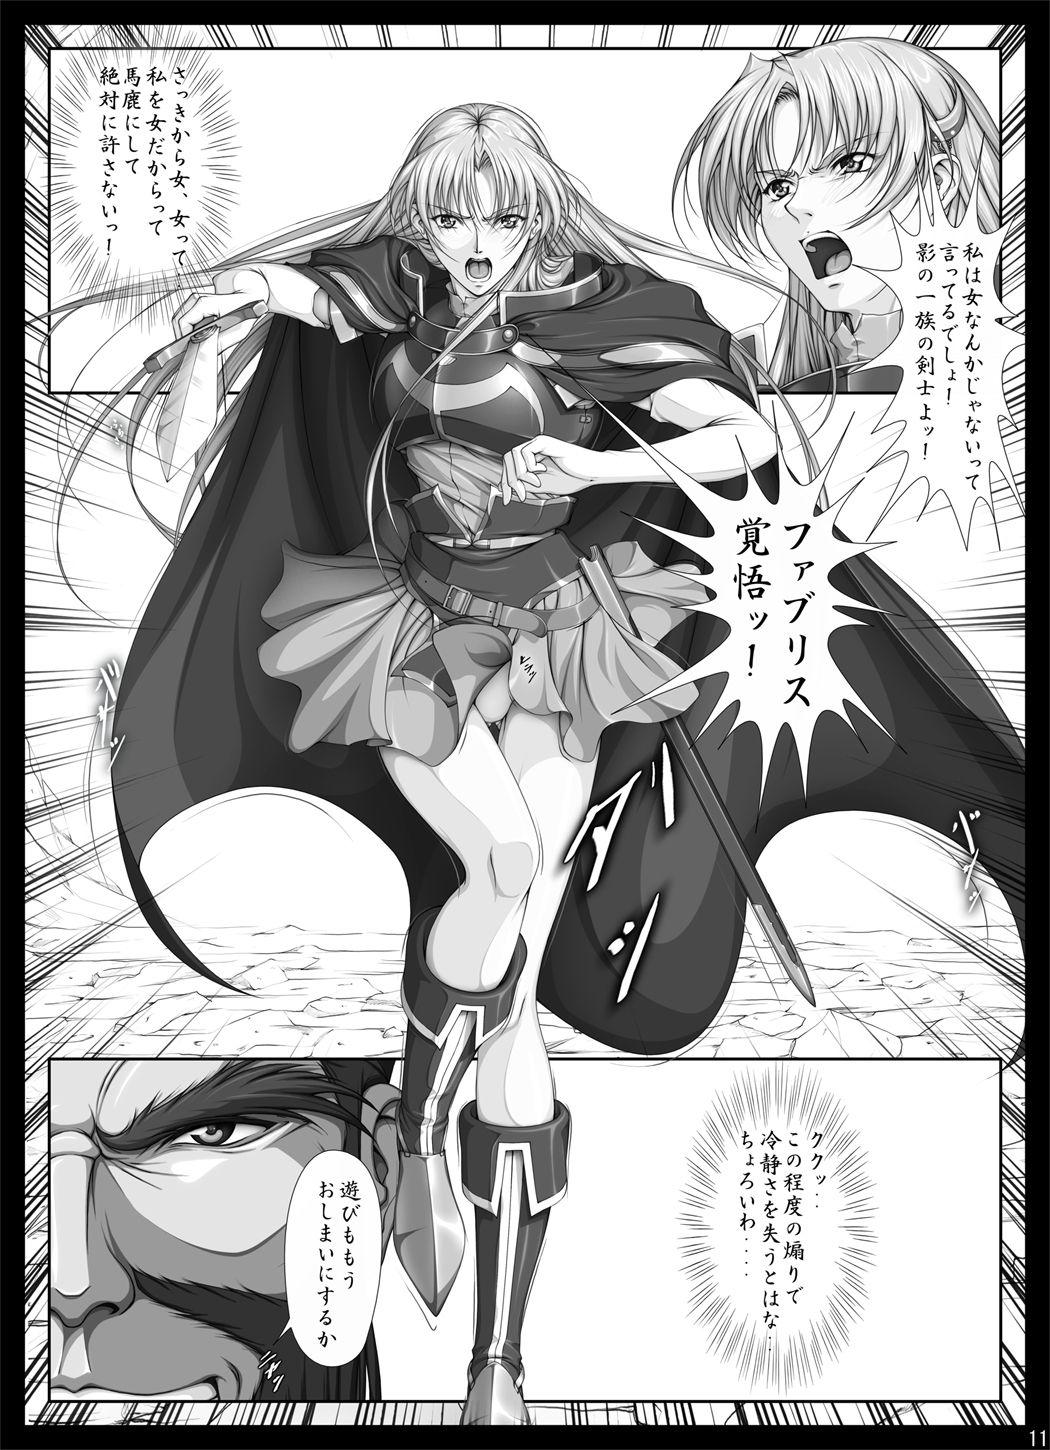 [Takatan's Waffen-SS] Fight, Sharon! 2 [Deluxe Edition] (Words Worth) +omake 17